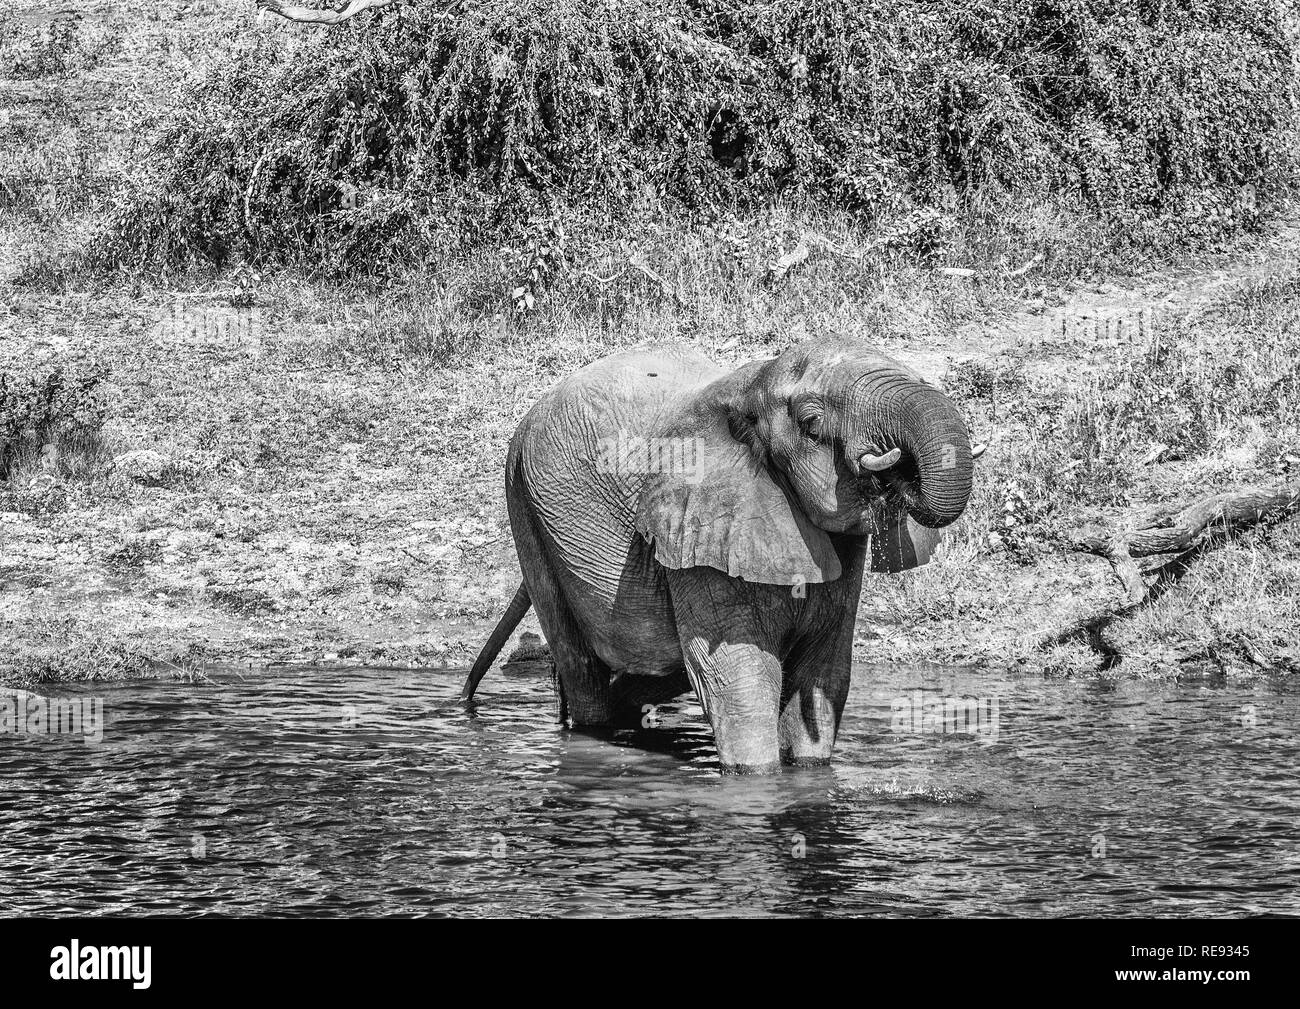 Elephants bathing and playing in the water of the chobe river in Botswana during summer - Stock Image